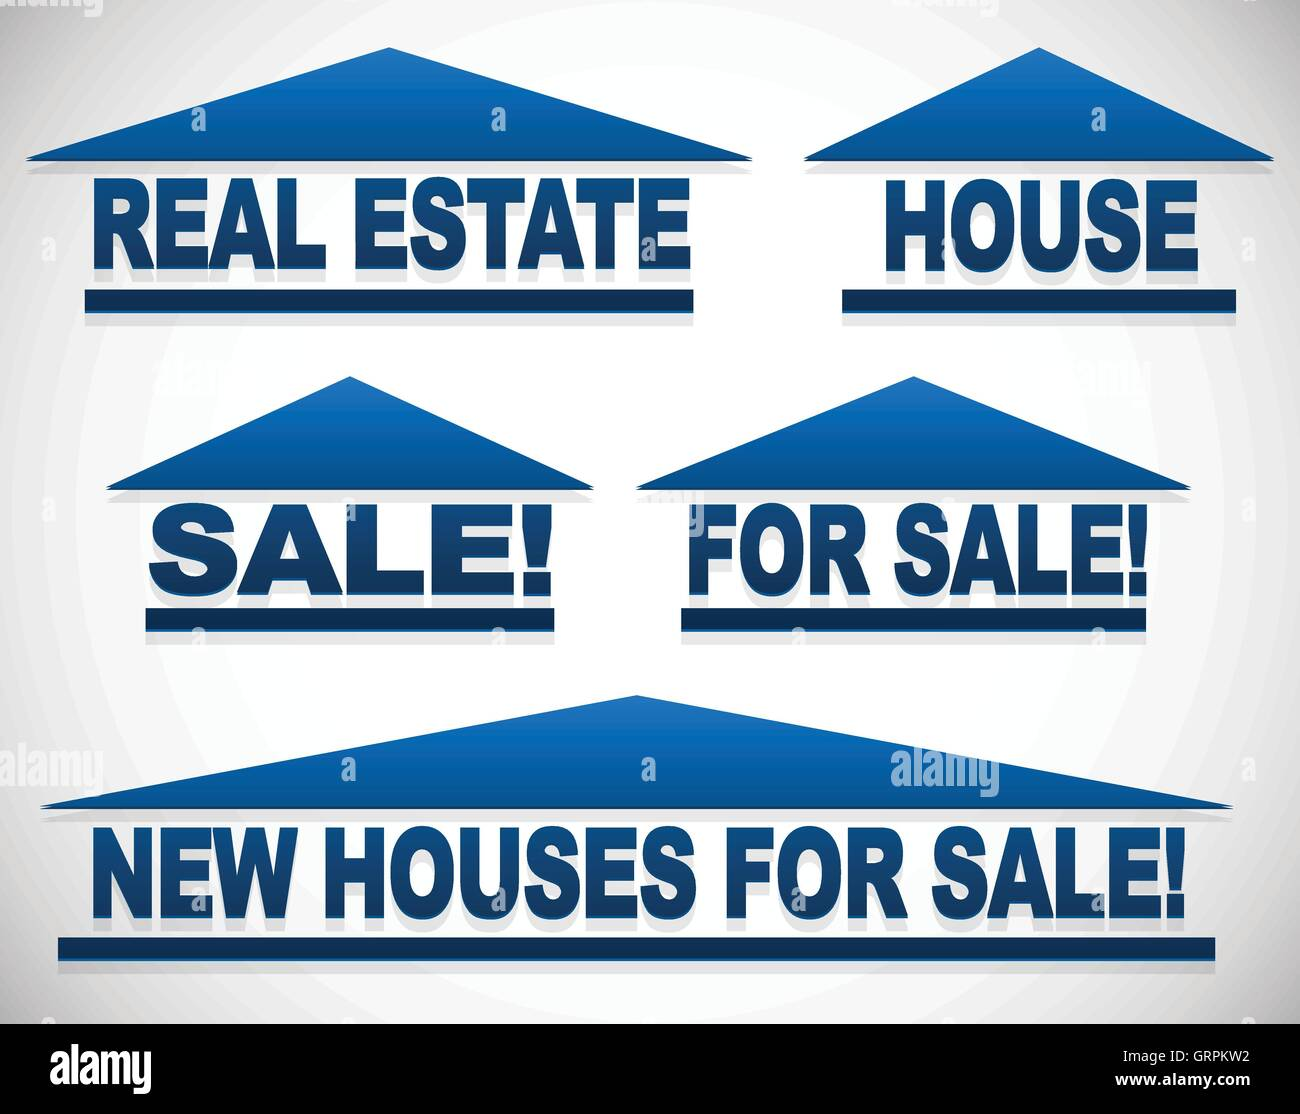 Icons with text for real estate concepts for sale signs house icons with text for real estate concepts for sale signs house symbols biocorpaavc Image collections